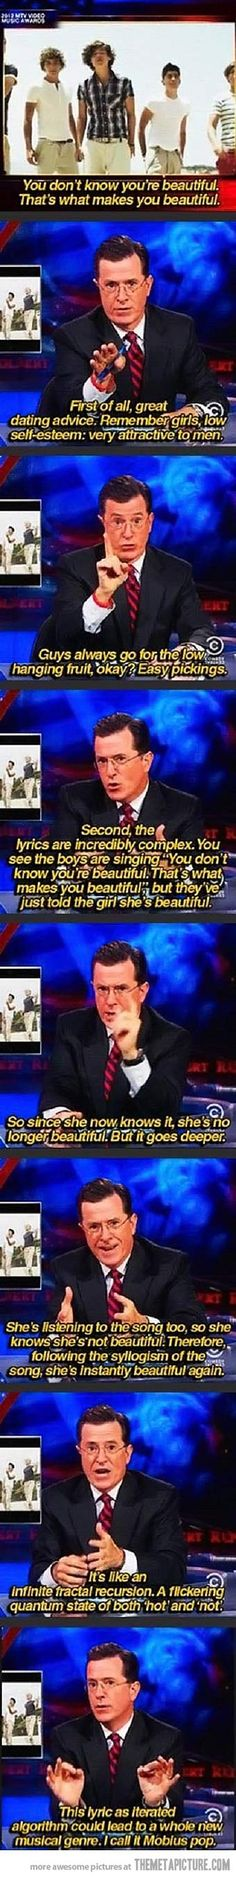 Brilliant Stephen Colbert.... even more hilarious when you hear him say this hahahaha